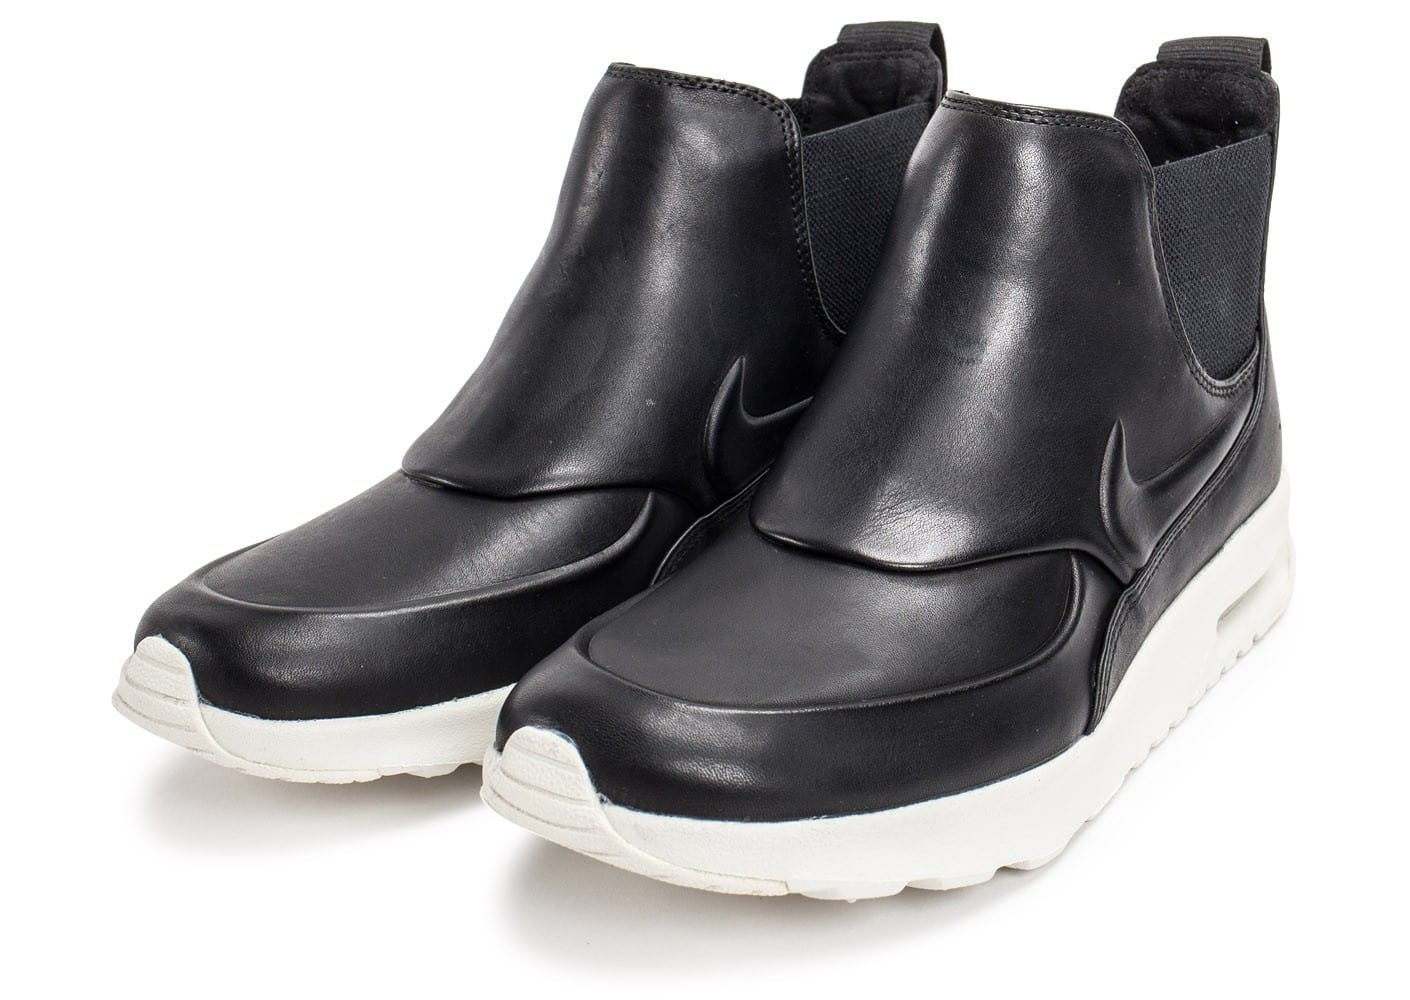 new product de8fb cce98 Chaussures Nike Air Max Thea Mid noire vue intérieure .